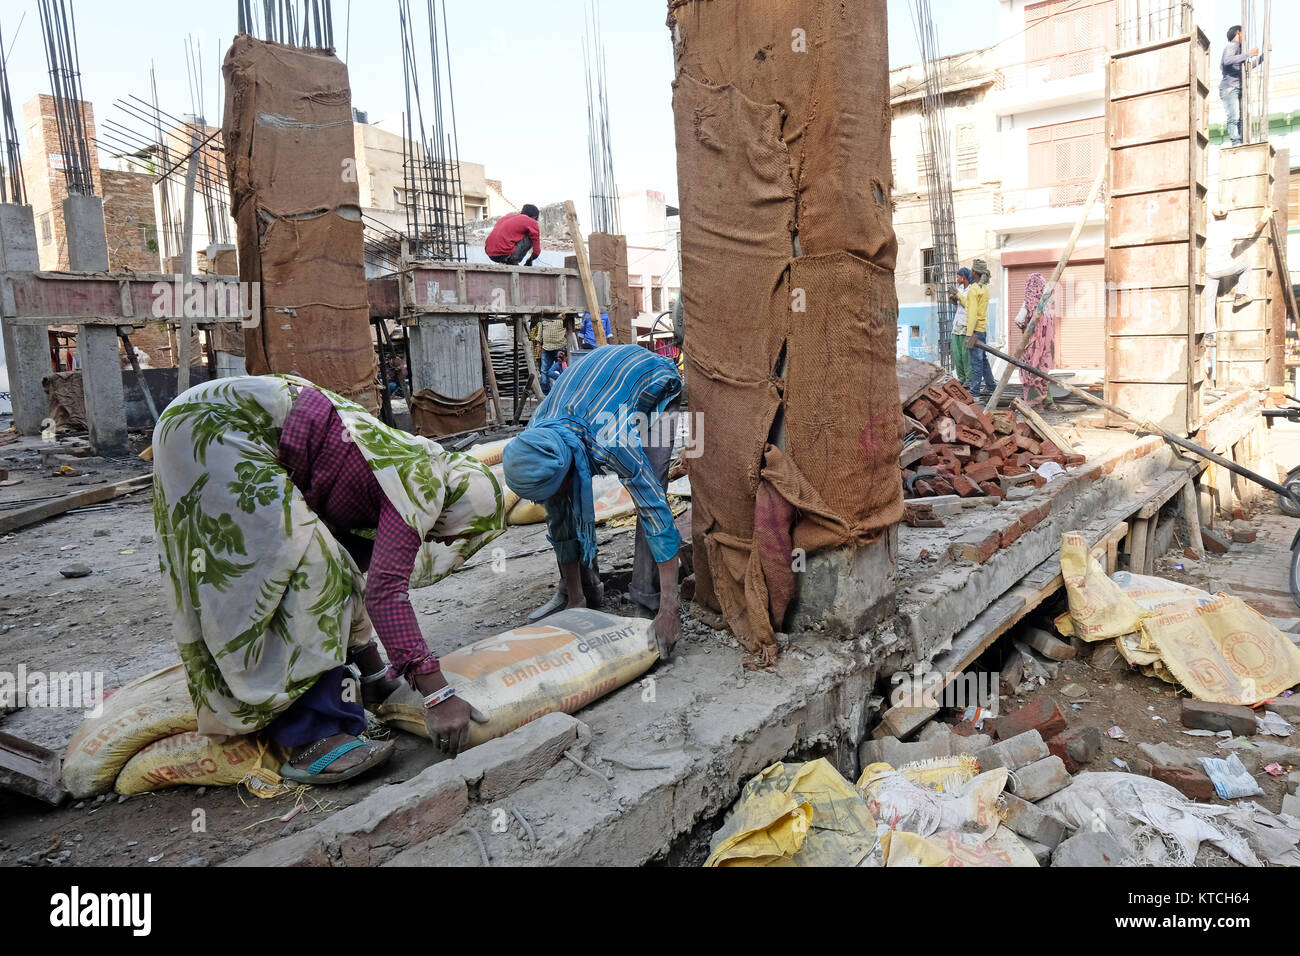 A building site in India with men and women labouring - Stock Image